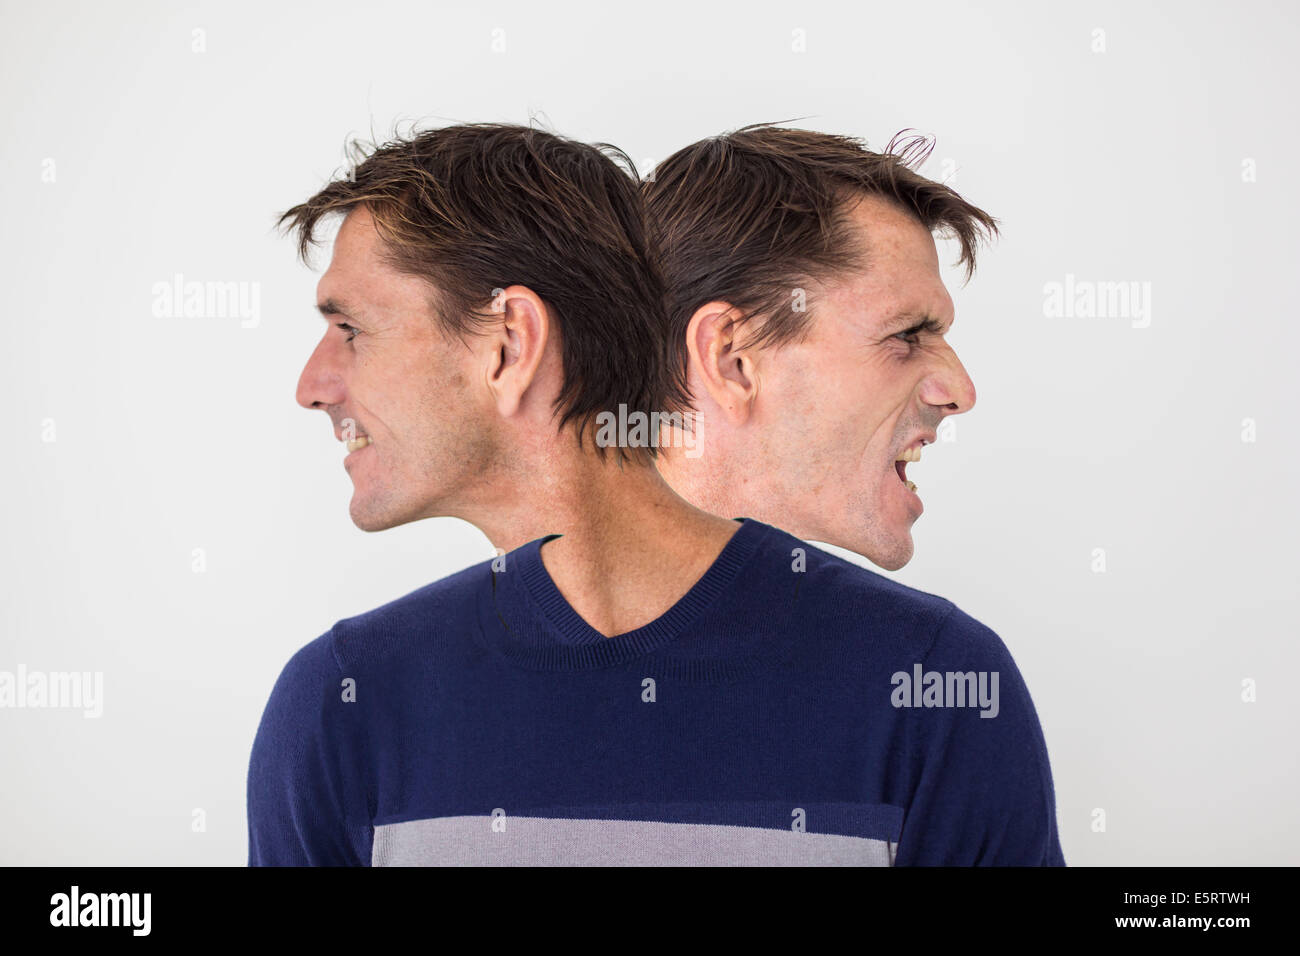 Conceptual image of personality disorders. - Stock Image